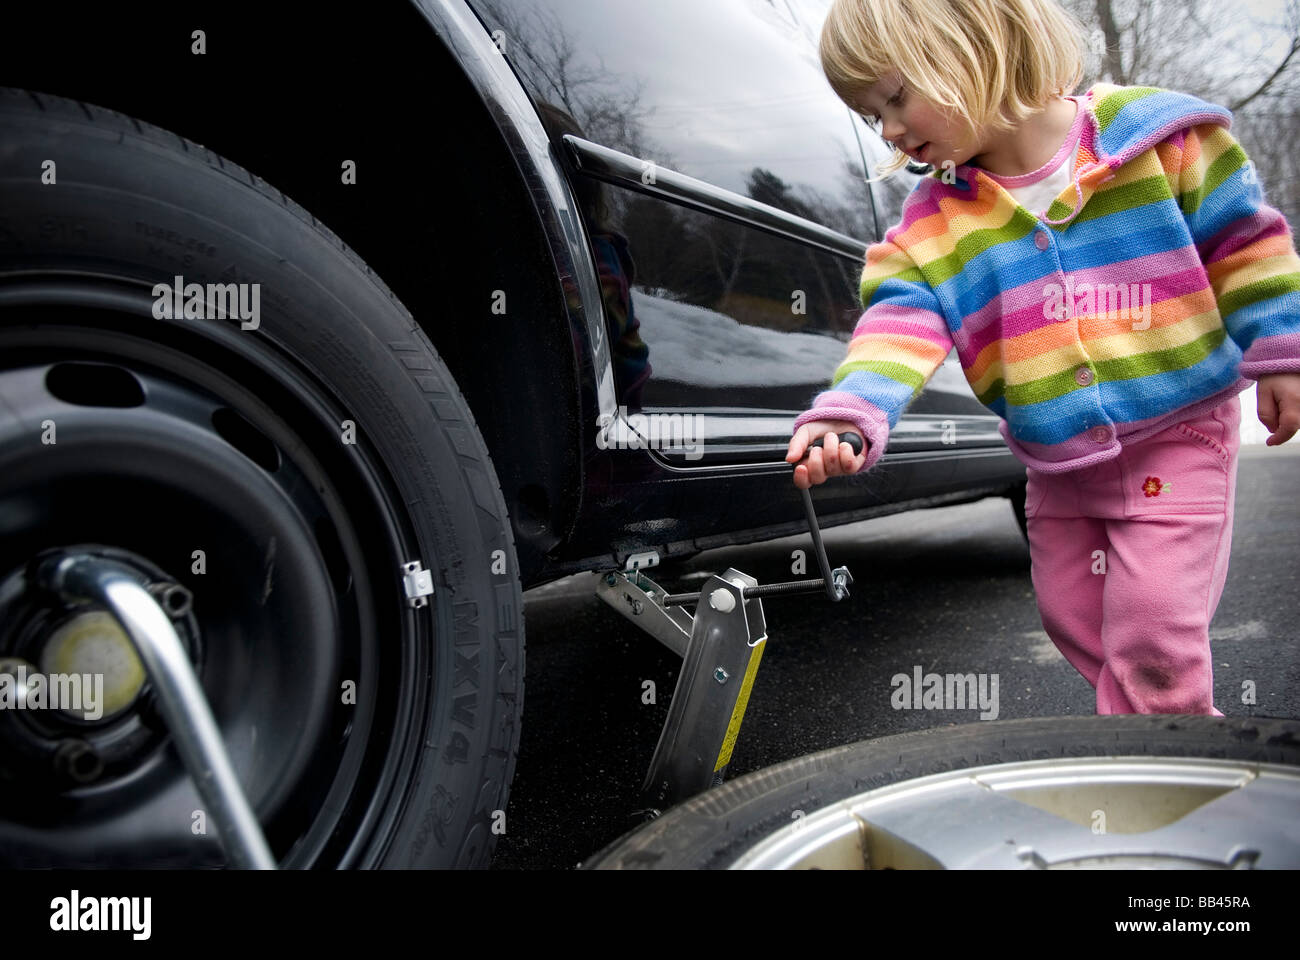 2-3 year old girl changing a flat tire, Cumberland, Maine. - Stock Image